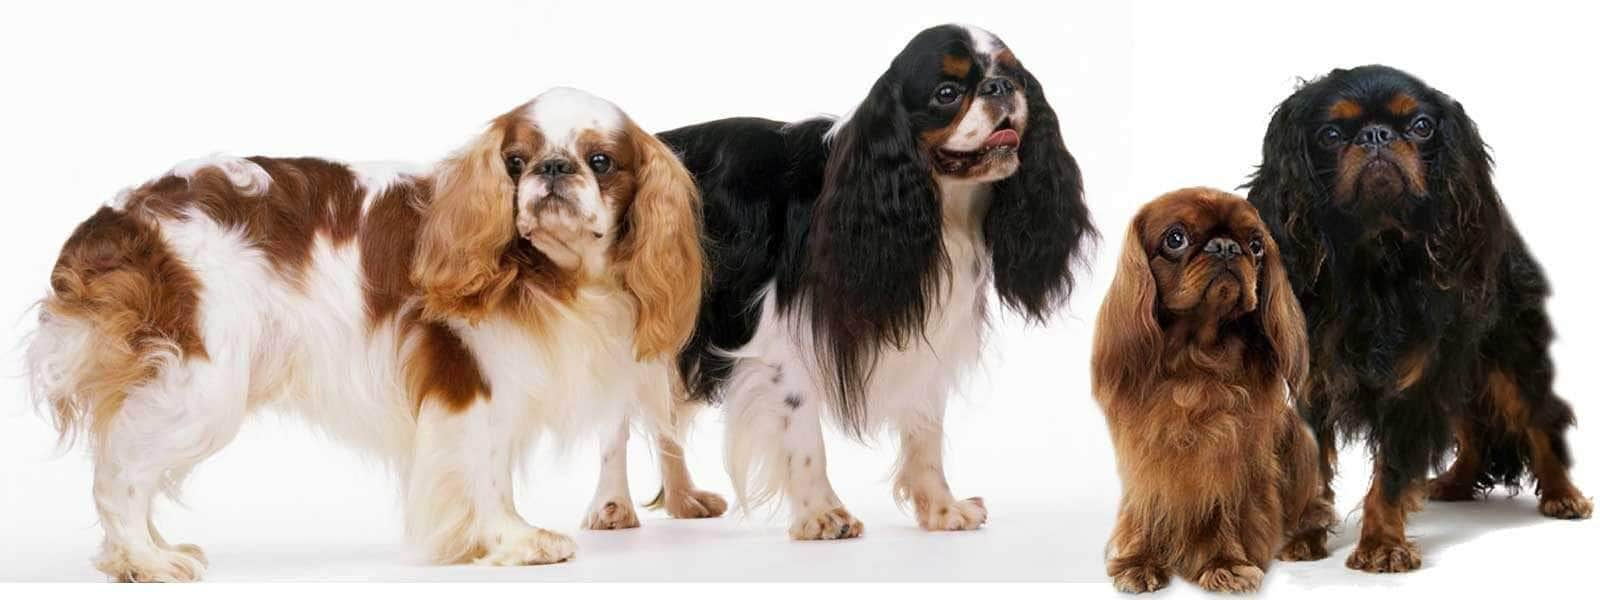 THE ENGLISH TOY SPANIEL CONFIDANT TO KINGS AND QUEENS